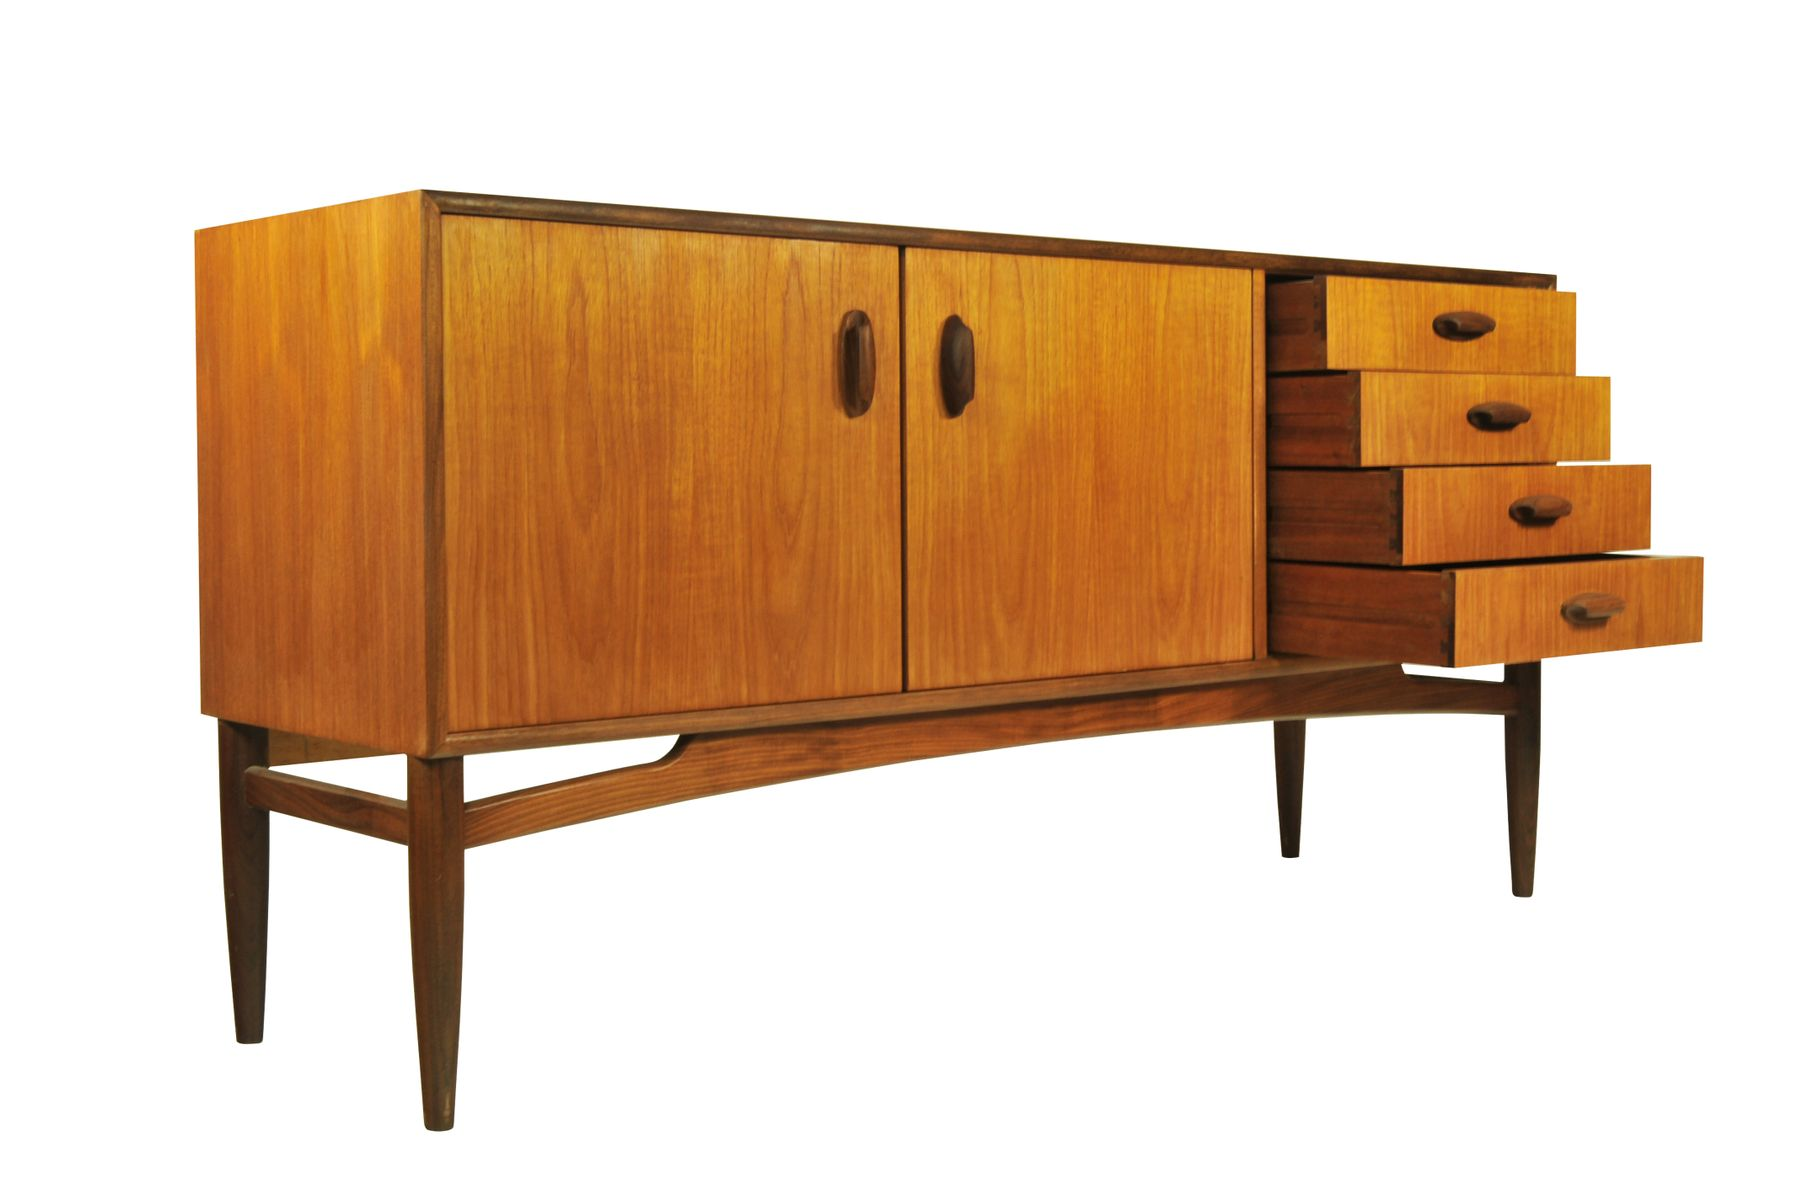 Small teak sideboard from g plan 1950s for sale at pamono for Sideboard 4 meter lang